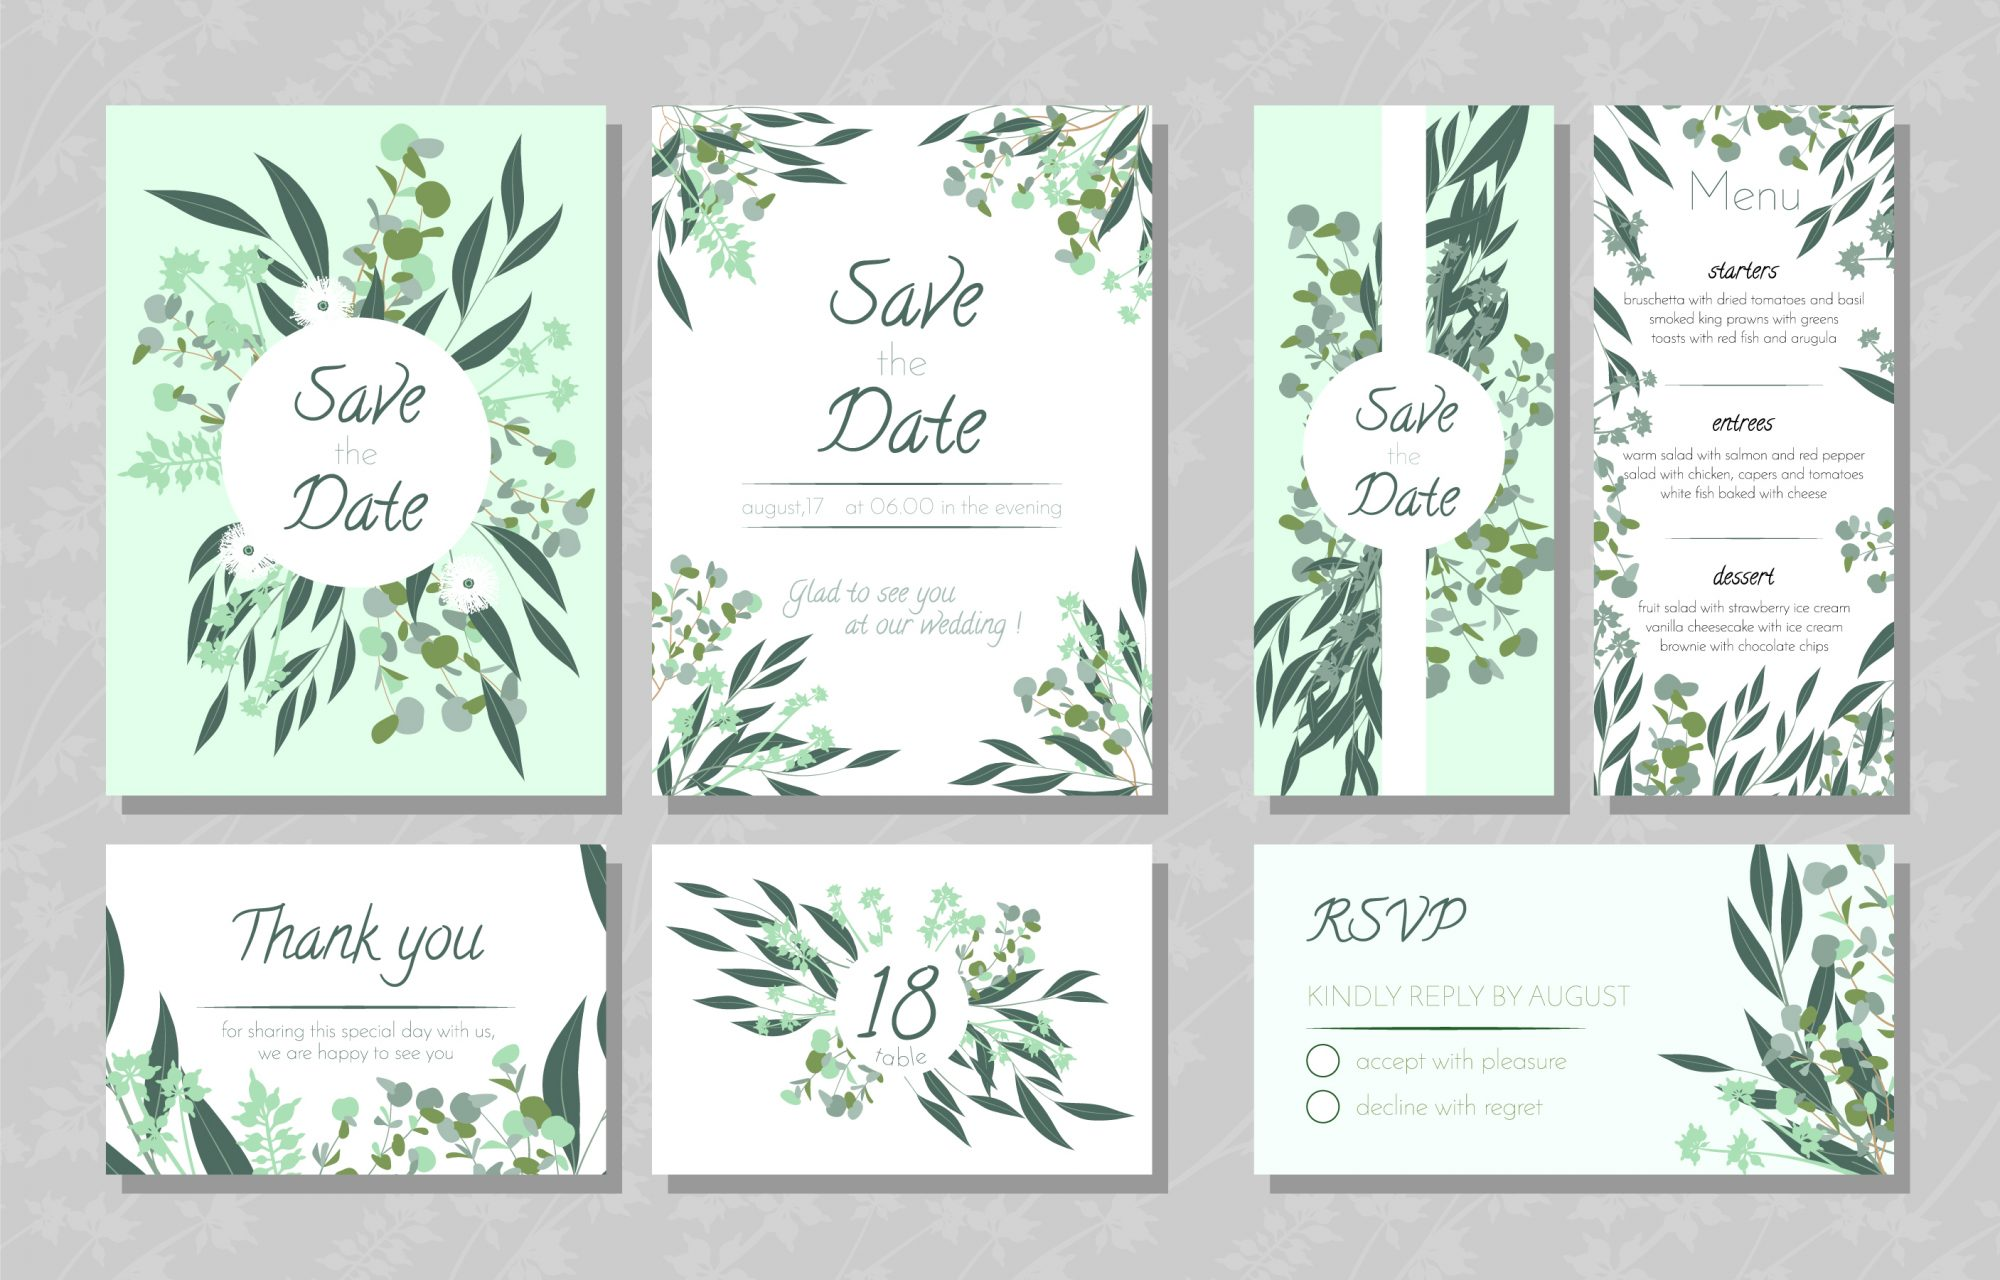 What Is the Correct Wedding Invitation Wording for Divorced Parents?